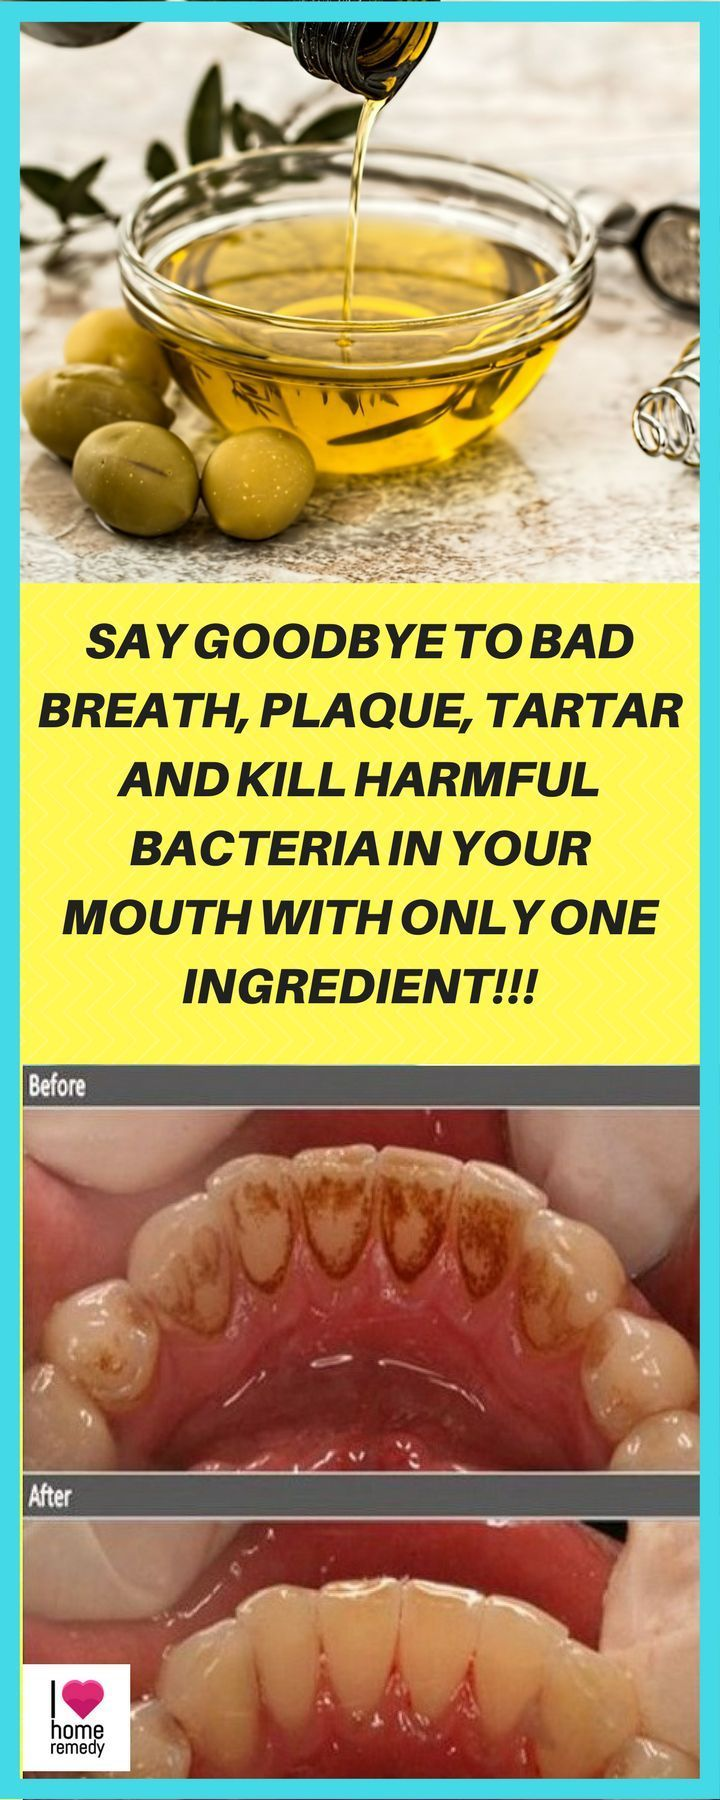 The extraction of oil is mainly used to improve oral health. Keep reading to learn how to perform this technique in order to eliminate plaque, dental tartar and bad breath once and for all.- Say goodbye to bad breath, plaque, tartar and kill harmful bacteria in your mouth with only one ingredient